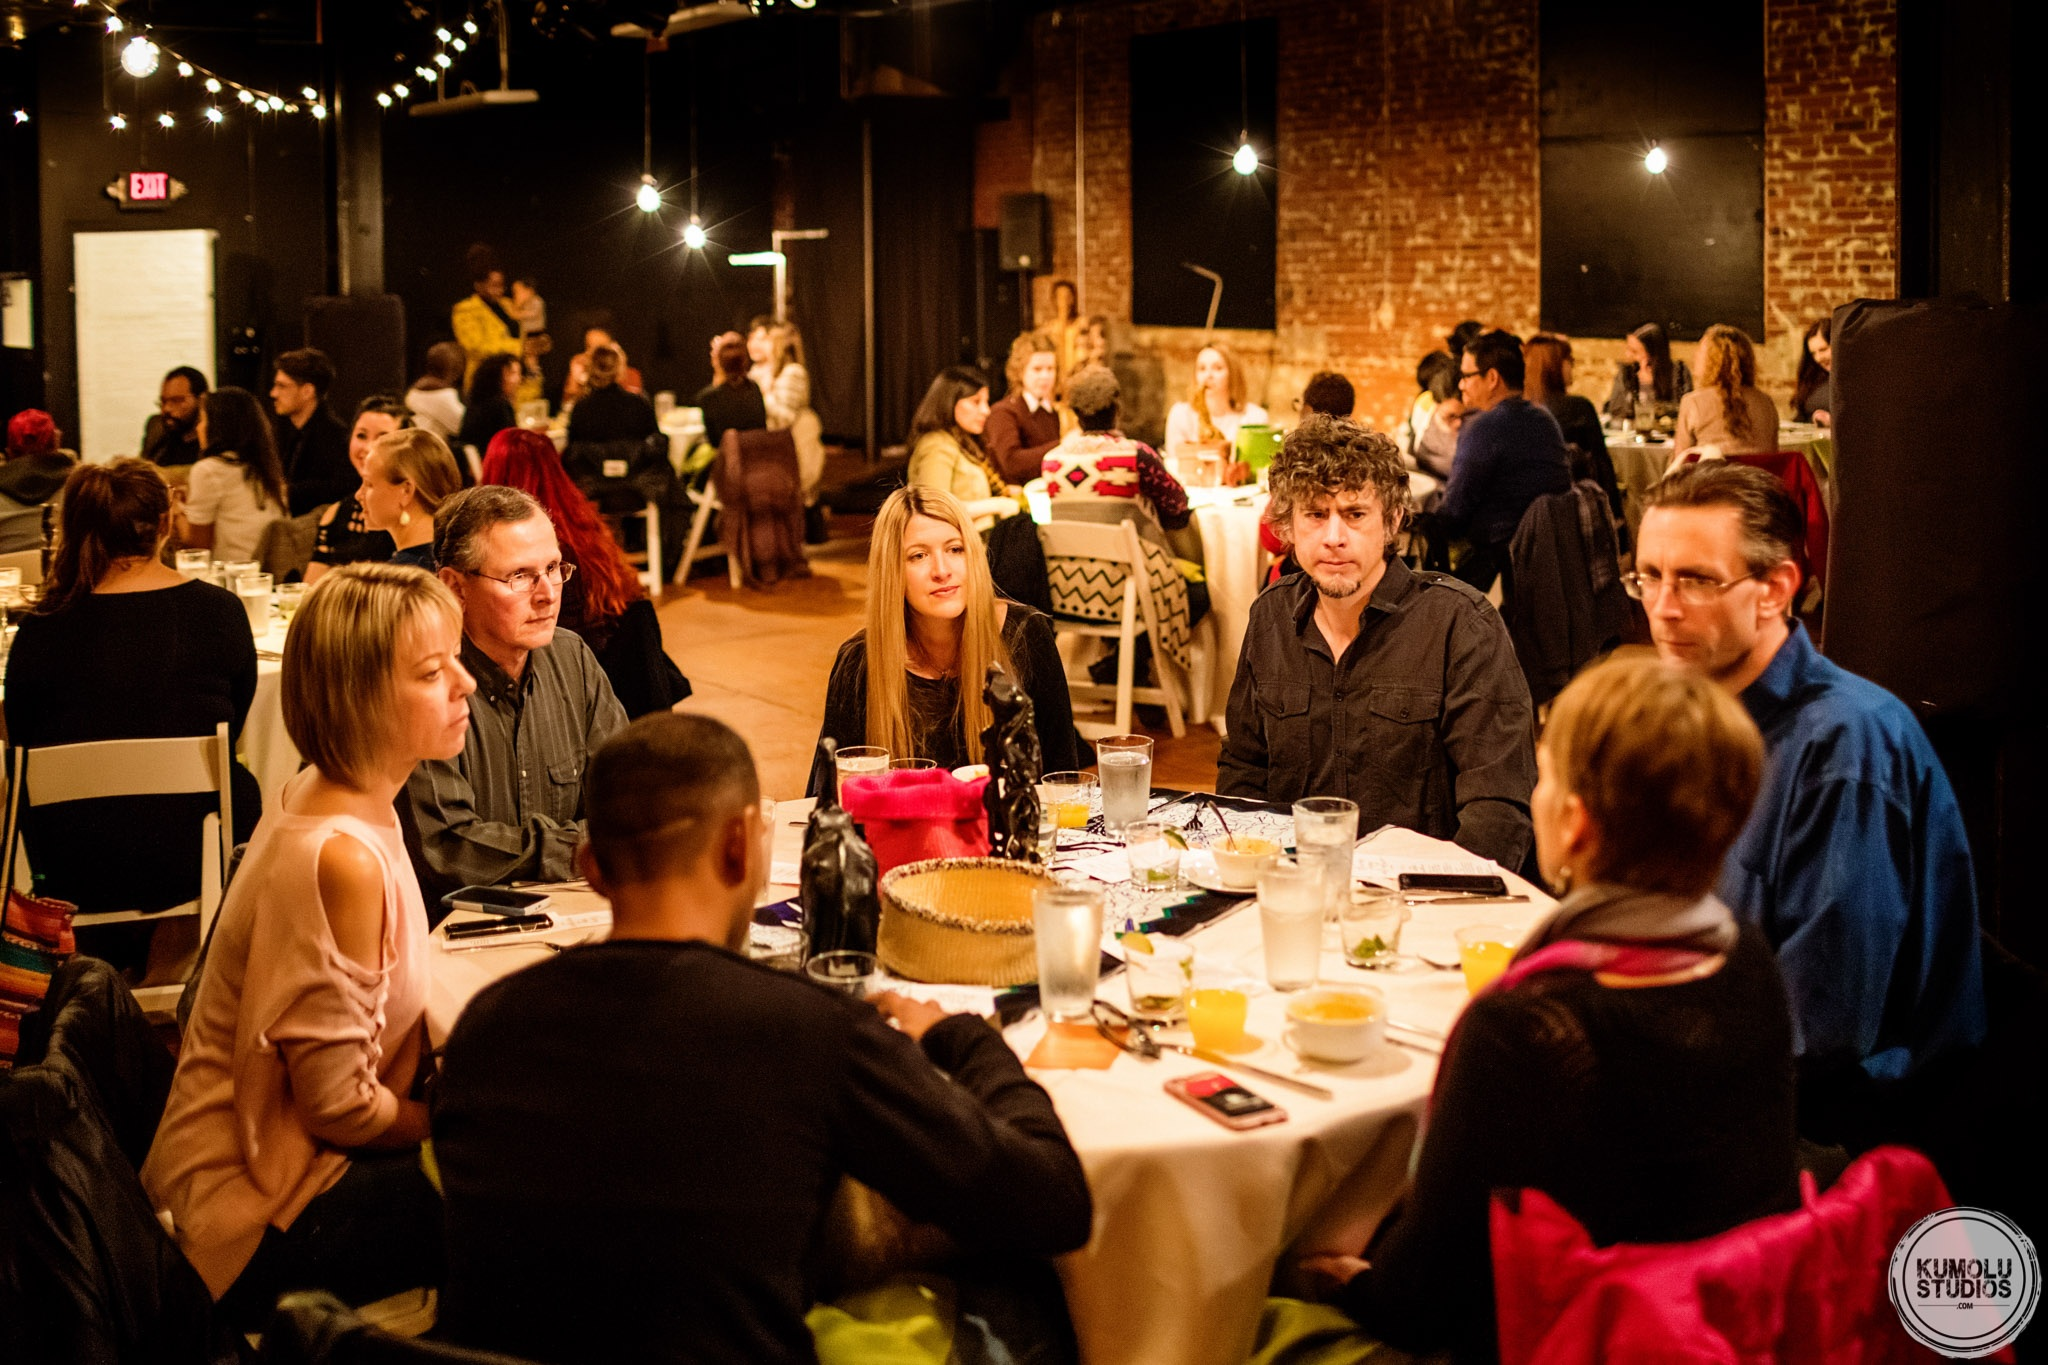 For-FacebookAndWebsites-5-Course-Meal-At-The-Palace-Durham-Food-Photographer-95.jpg